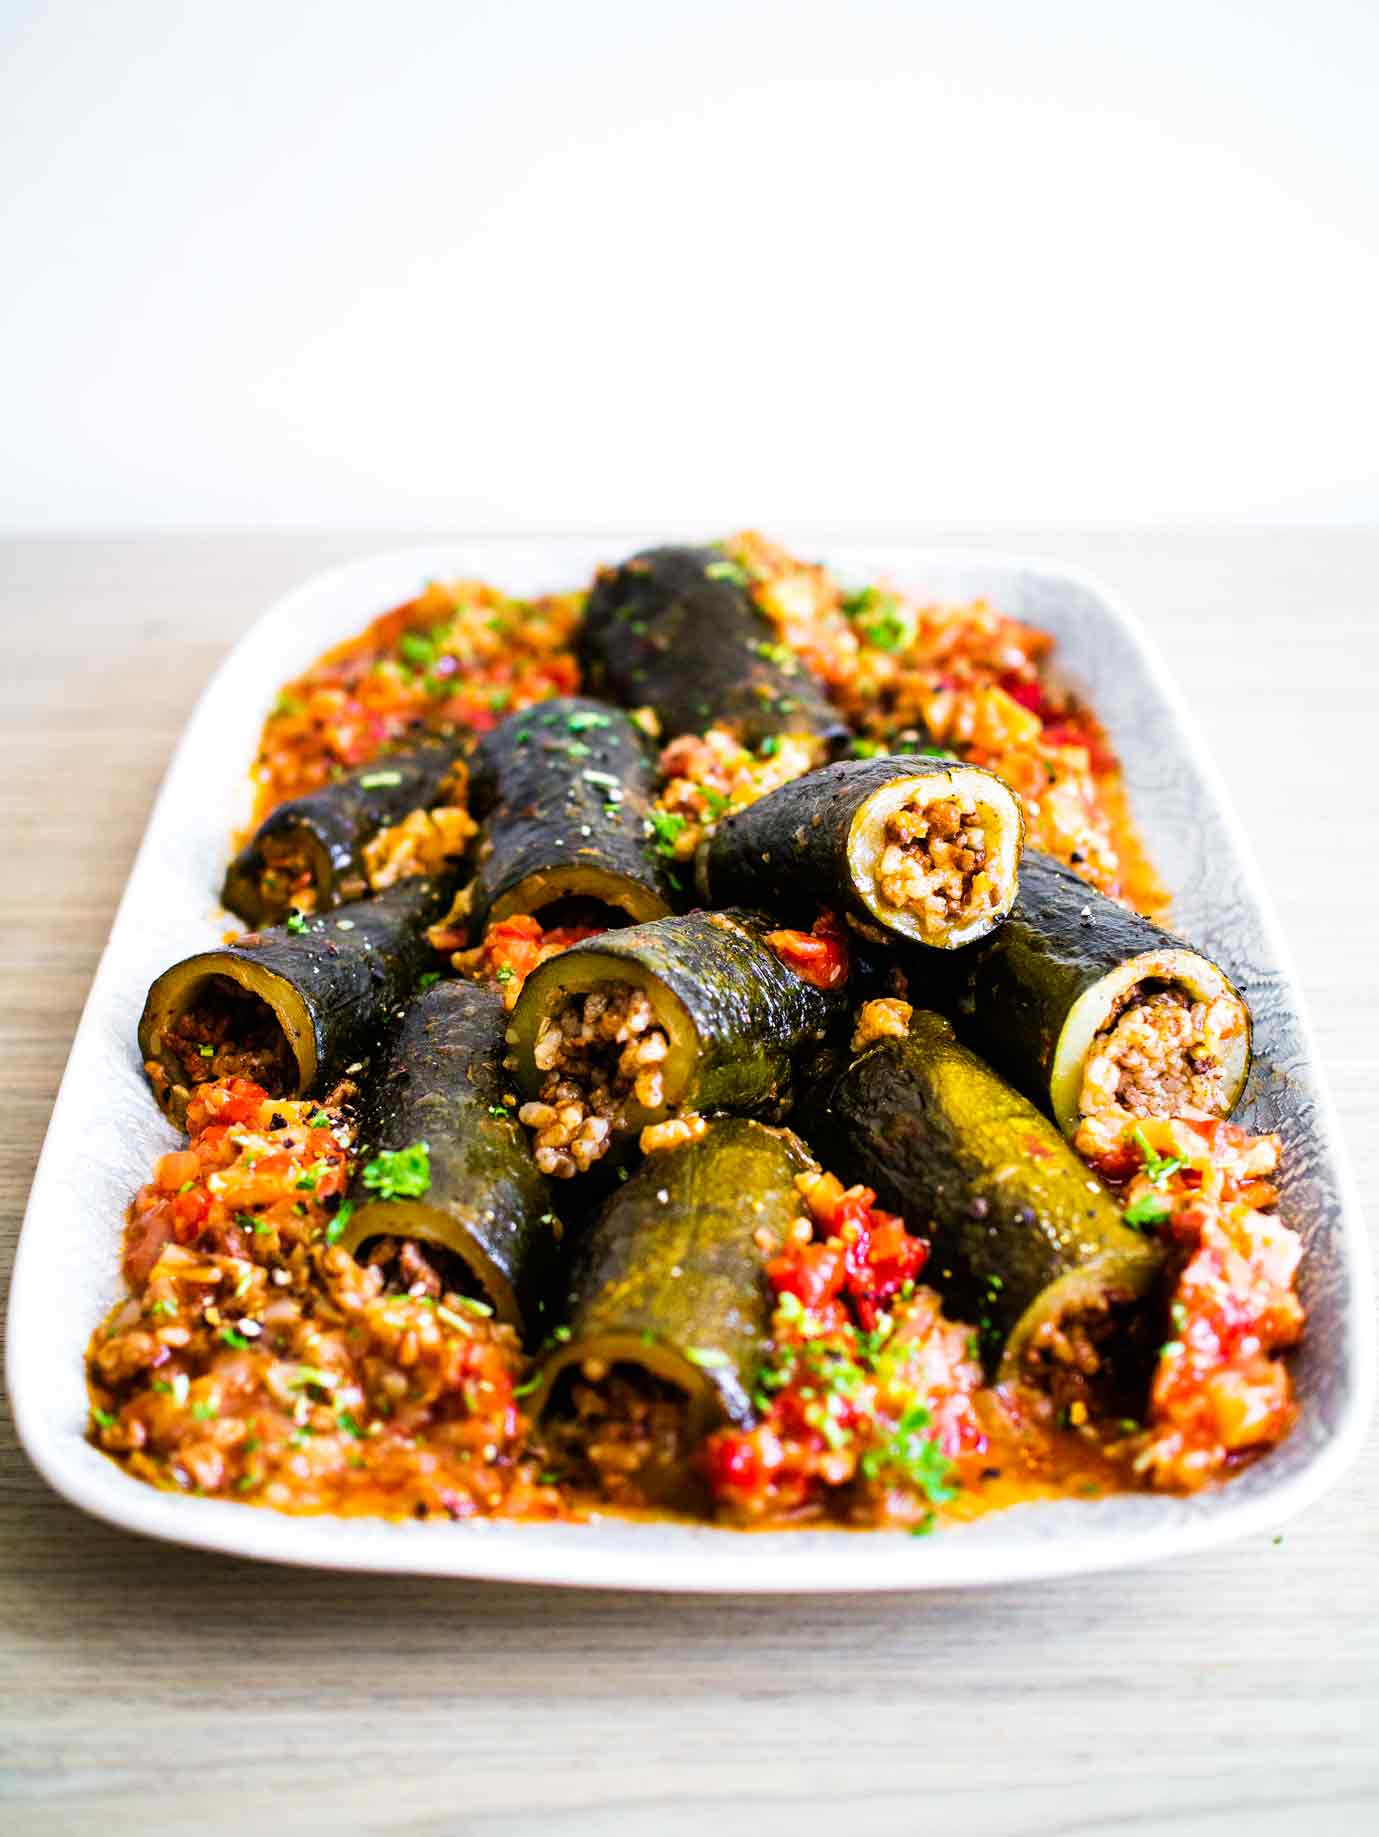 Israeli Stuffed Tomatoes and Courgettes   Vegan Recipe   Discover Delicious   www.discoverdelicious.org